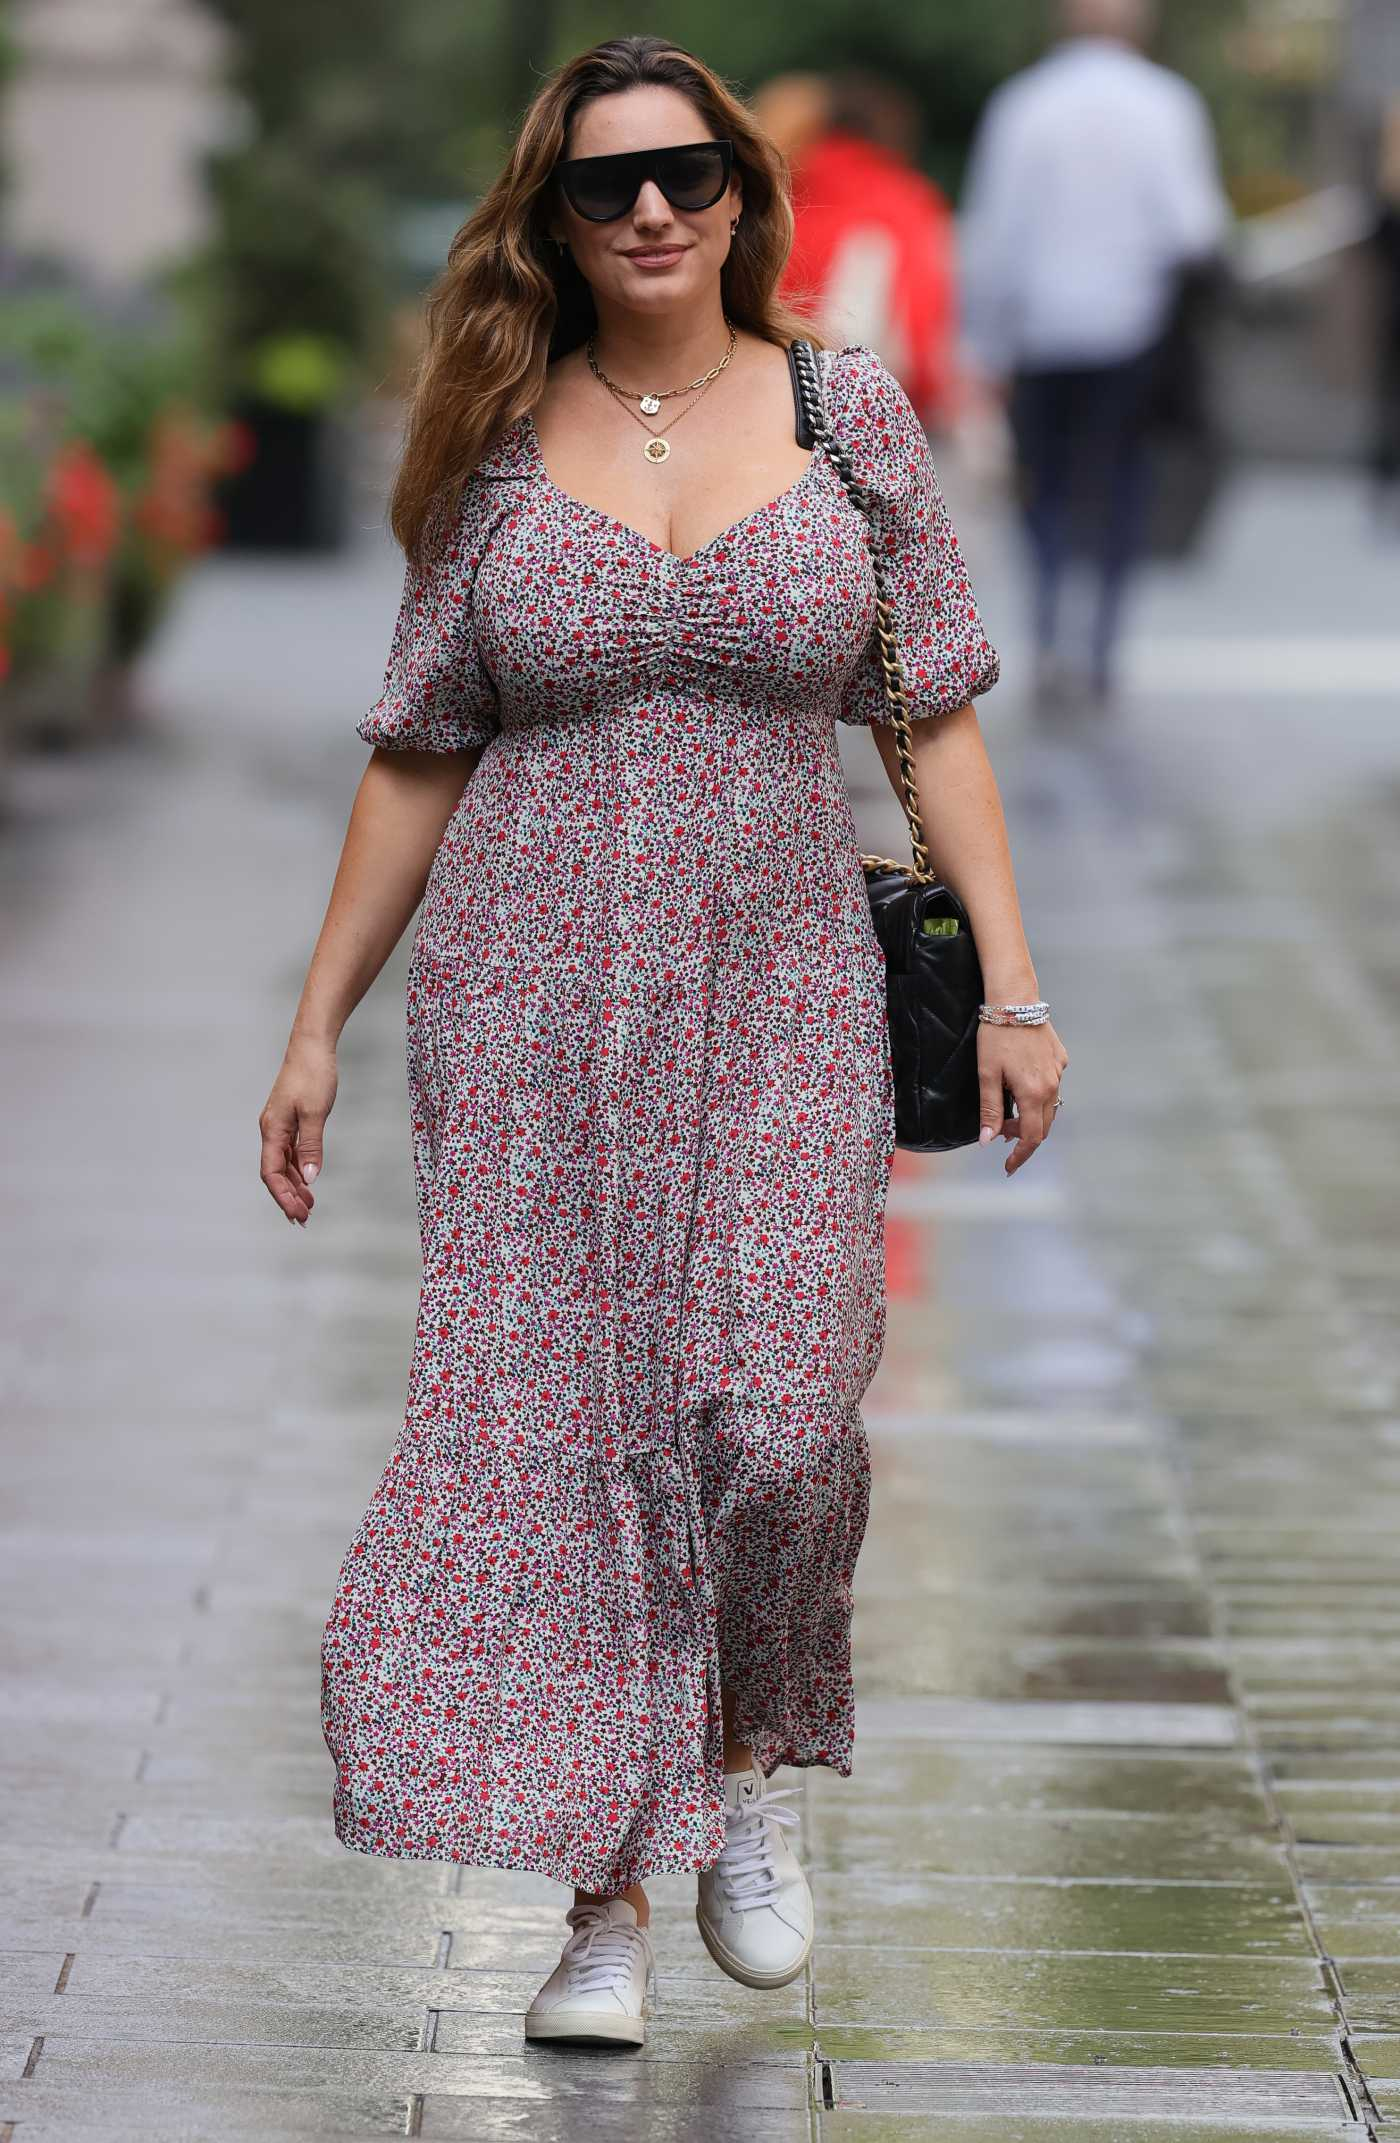 Kelly Brook in a Floral Summer Dress Leaves the Heart Radio in London 08/17/2020